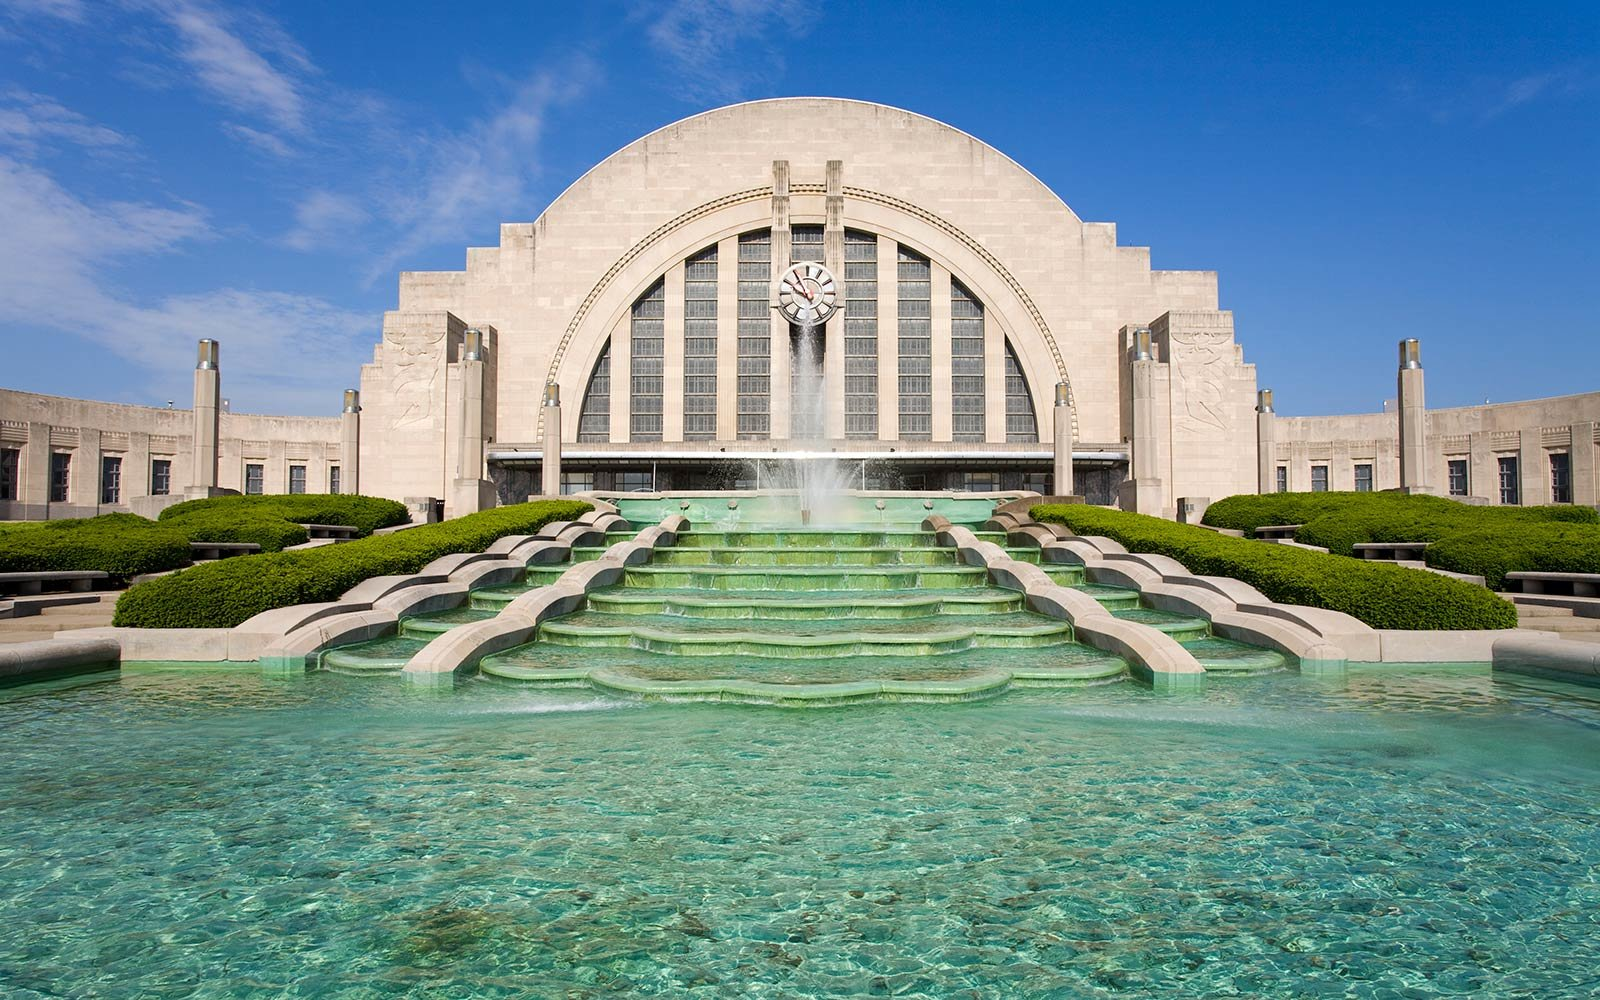 Cincinnati Museum Center at Union Terminal, Cincinnati, Ohio